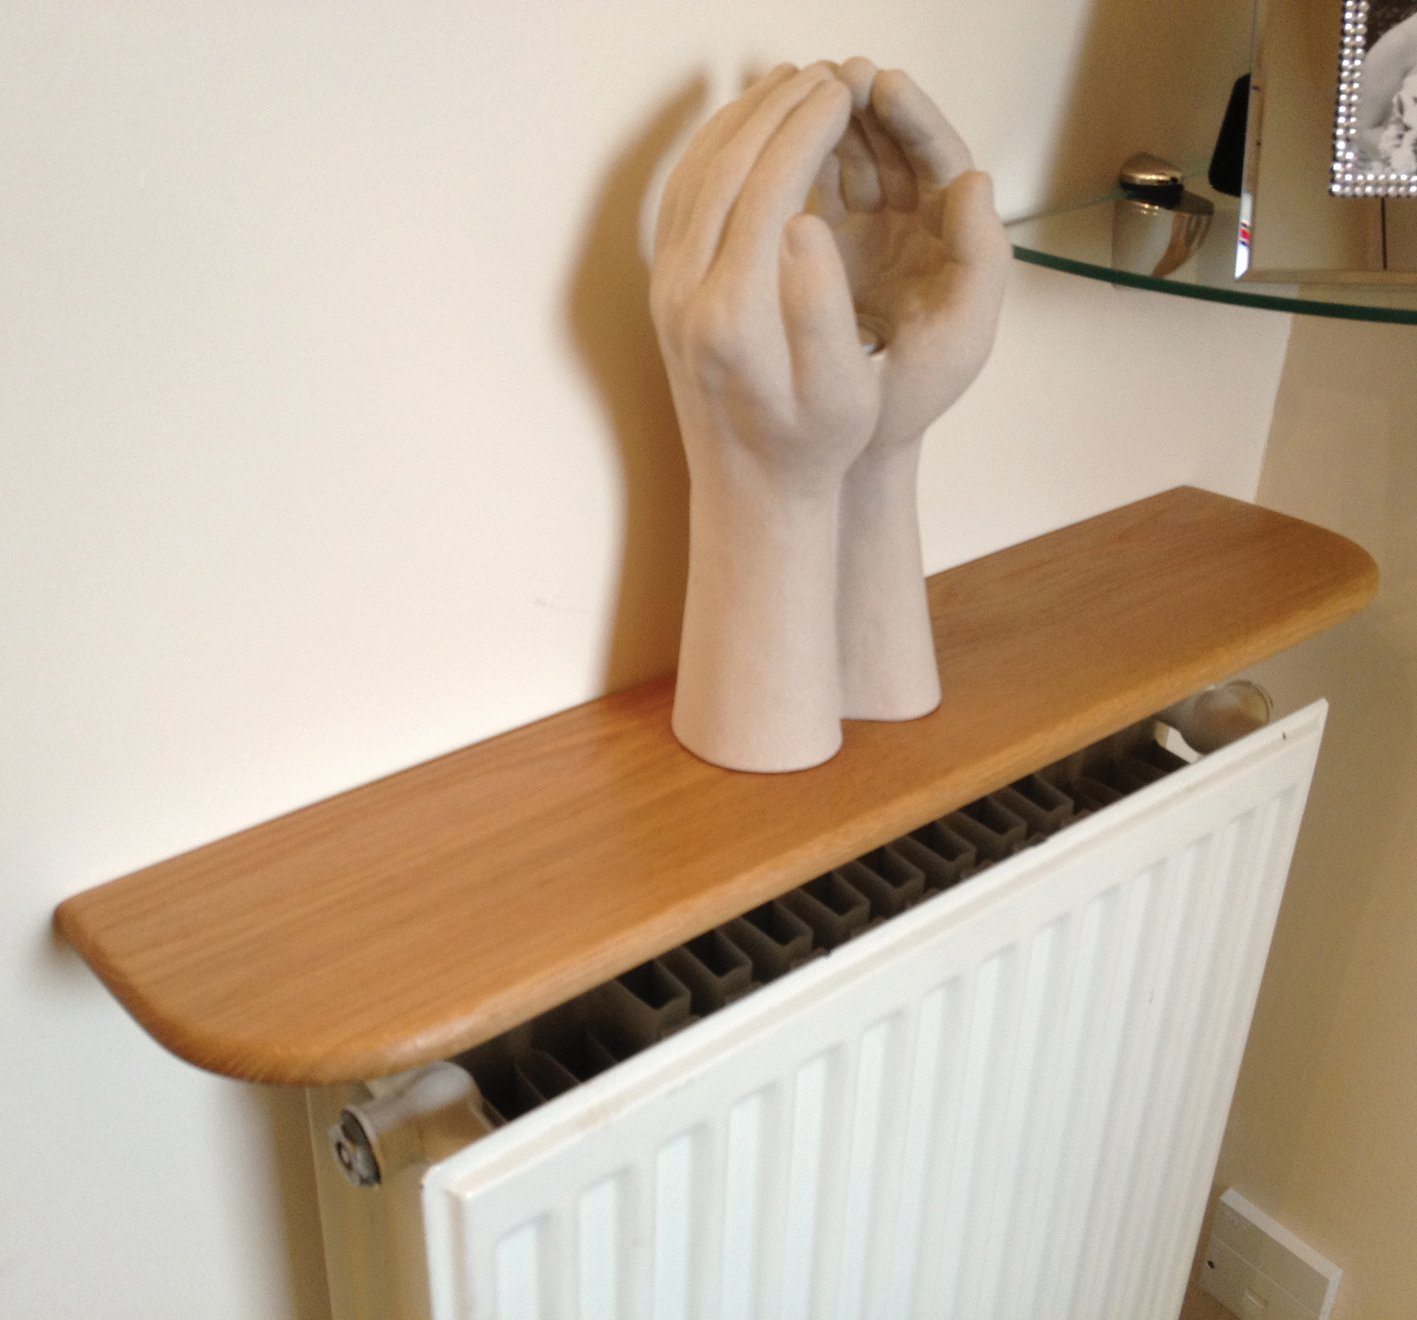 Solid Oak Radiator Shelf - Pre Finished 1800 x 150 x 20mm: Amazon.co.uk:  Kitchen & Home